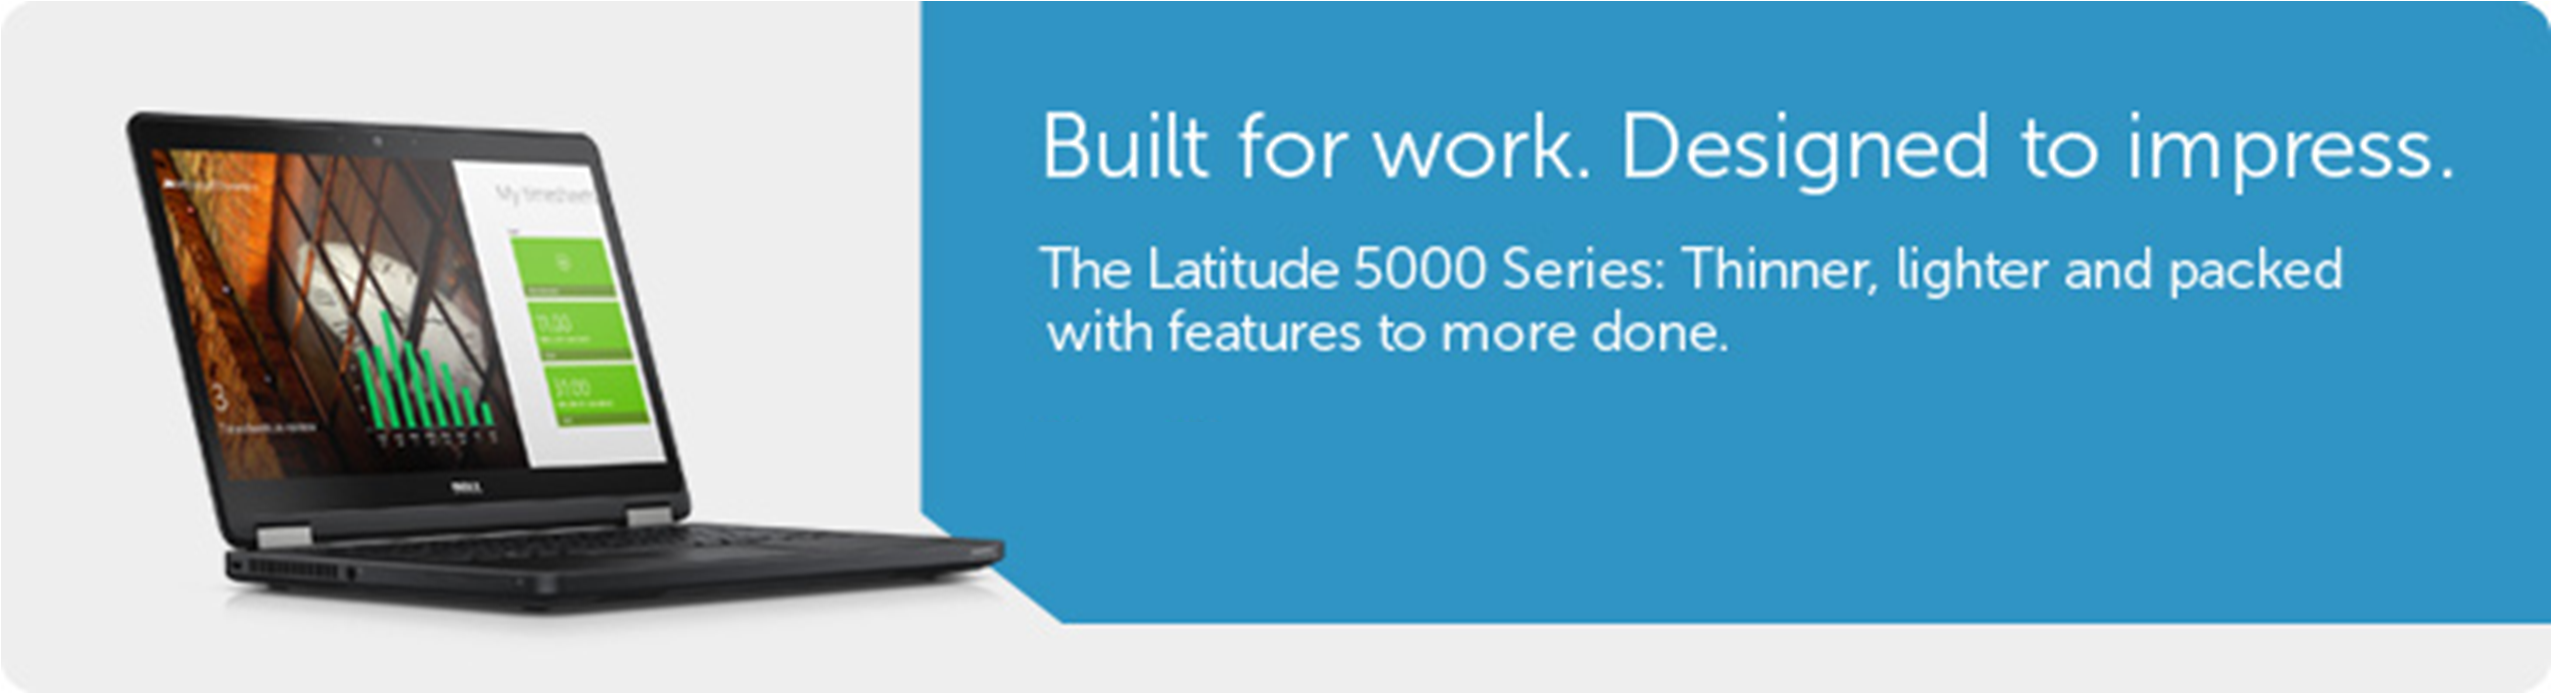 Latitude Laptop